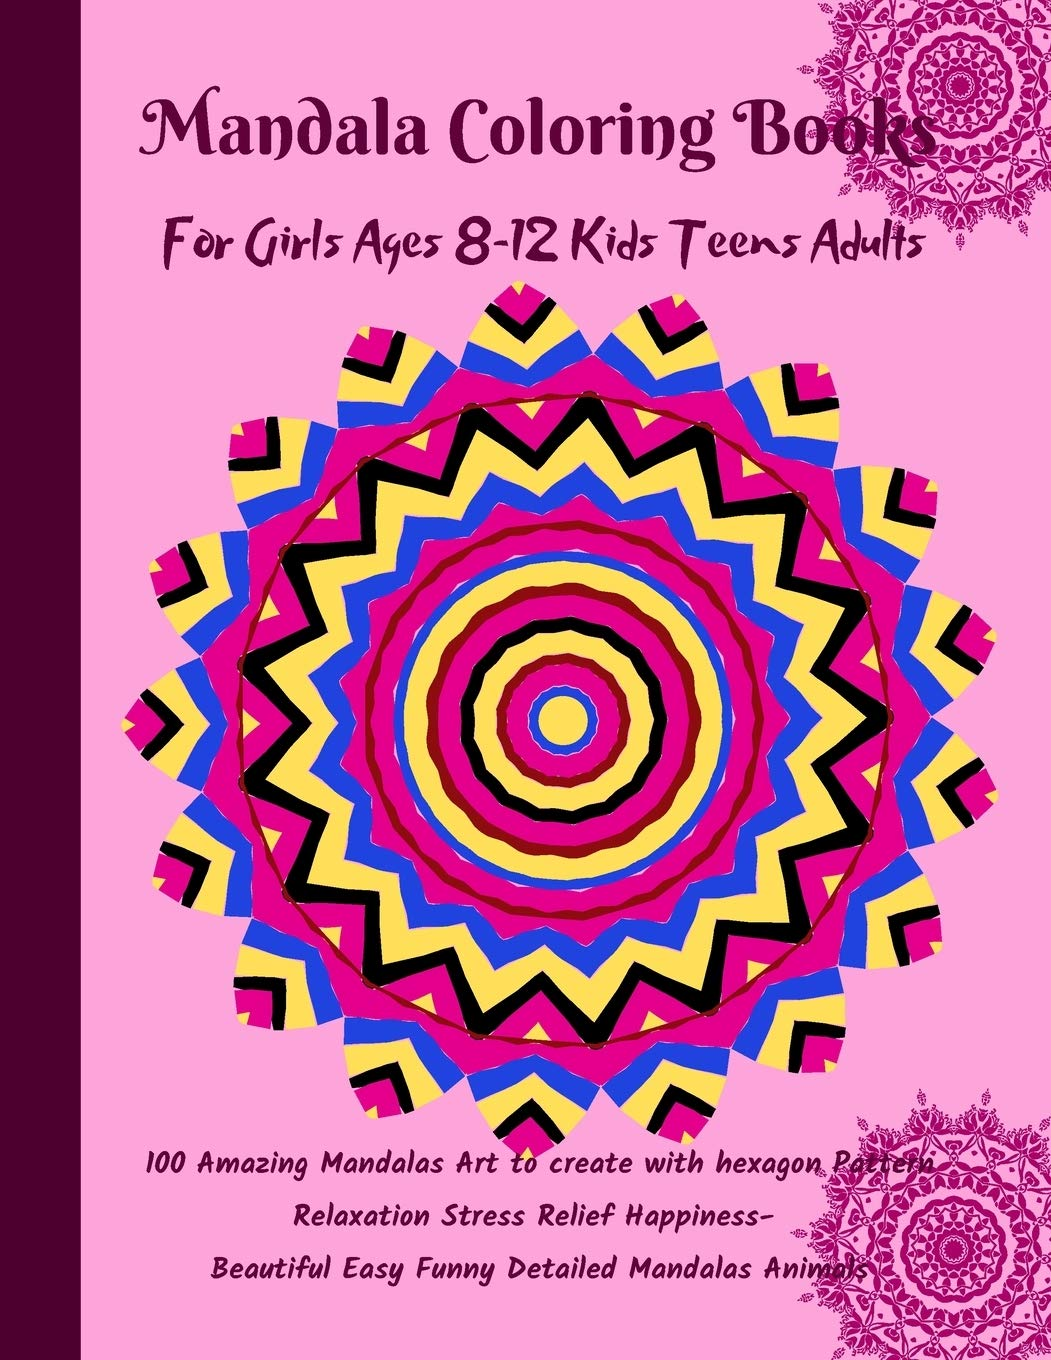 Mandala Coloring Books For Girls Ages 8-12: Kids Teens Adults 100